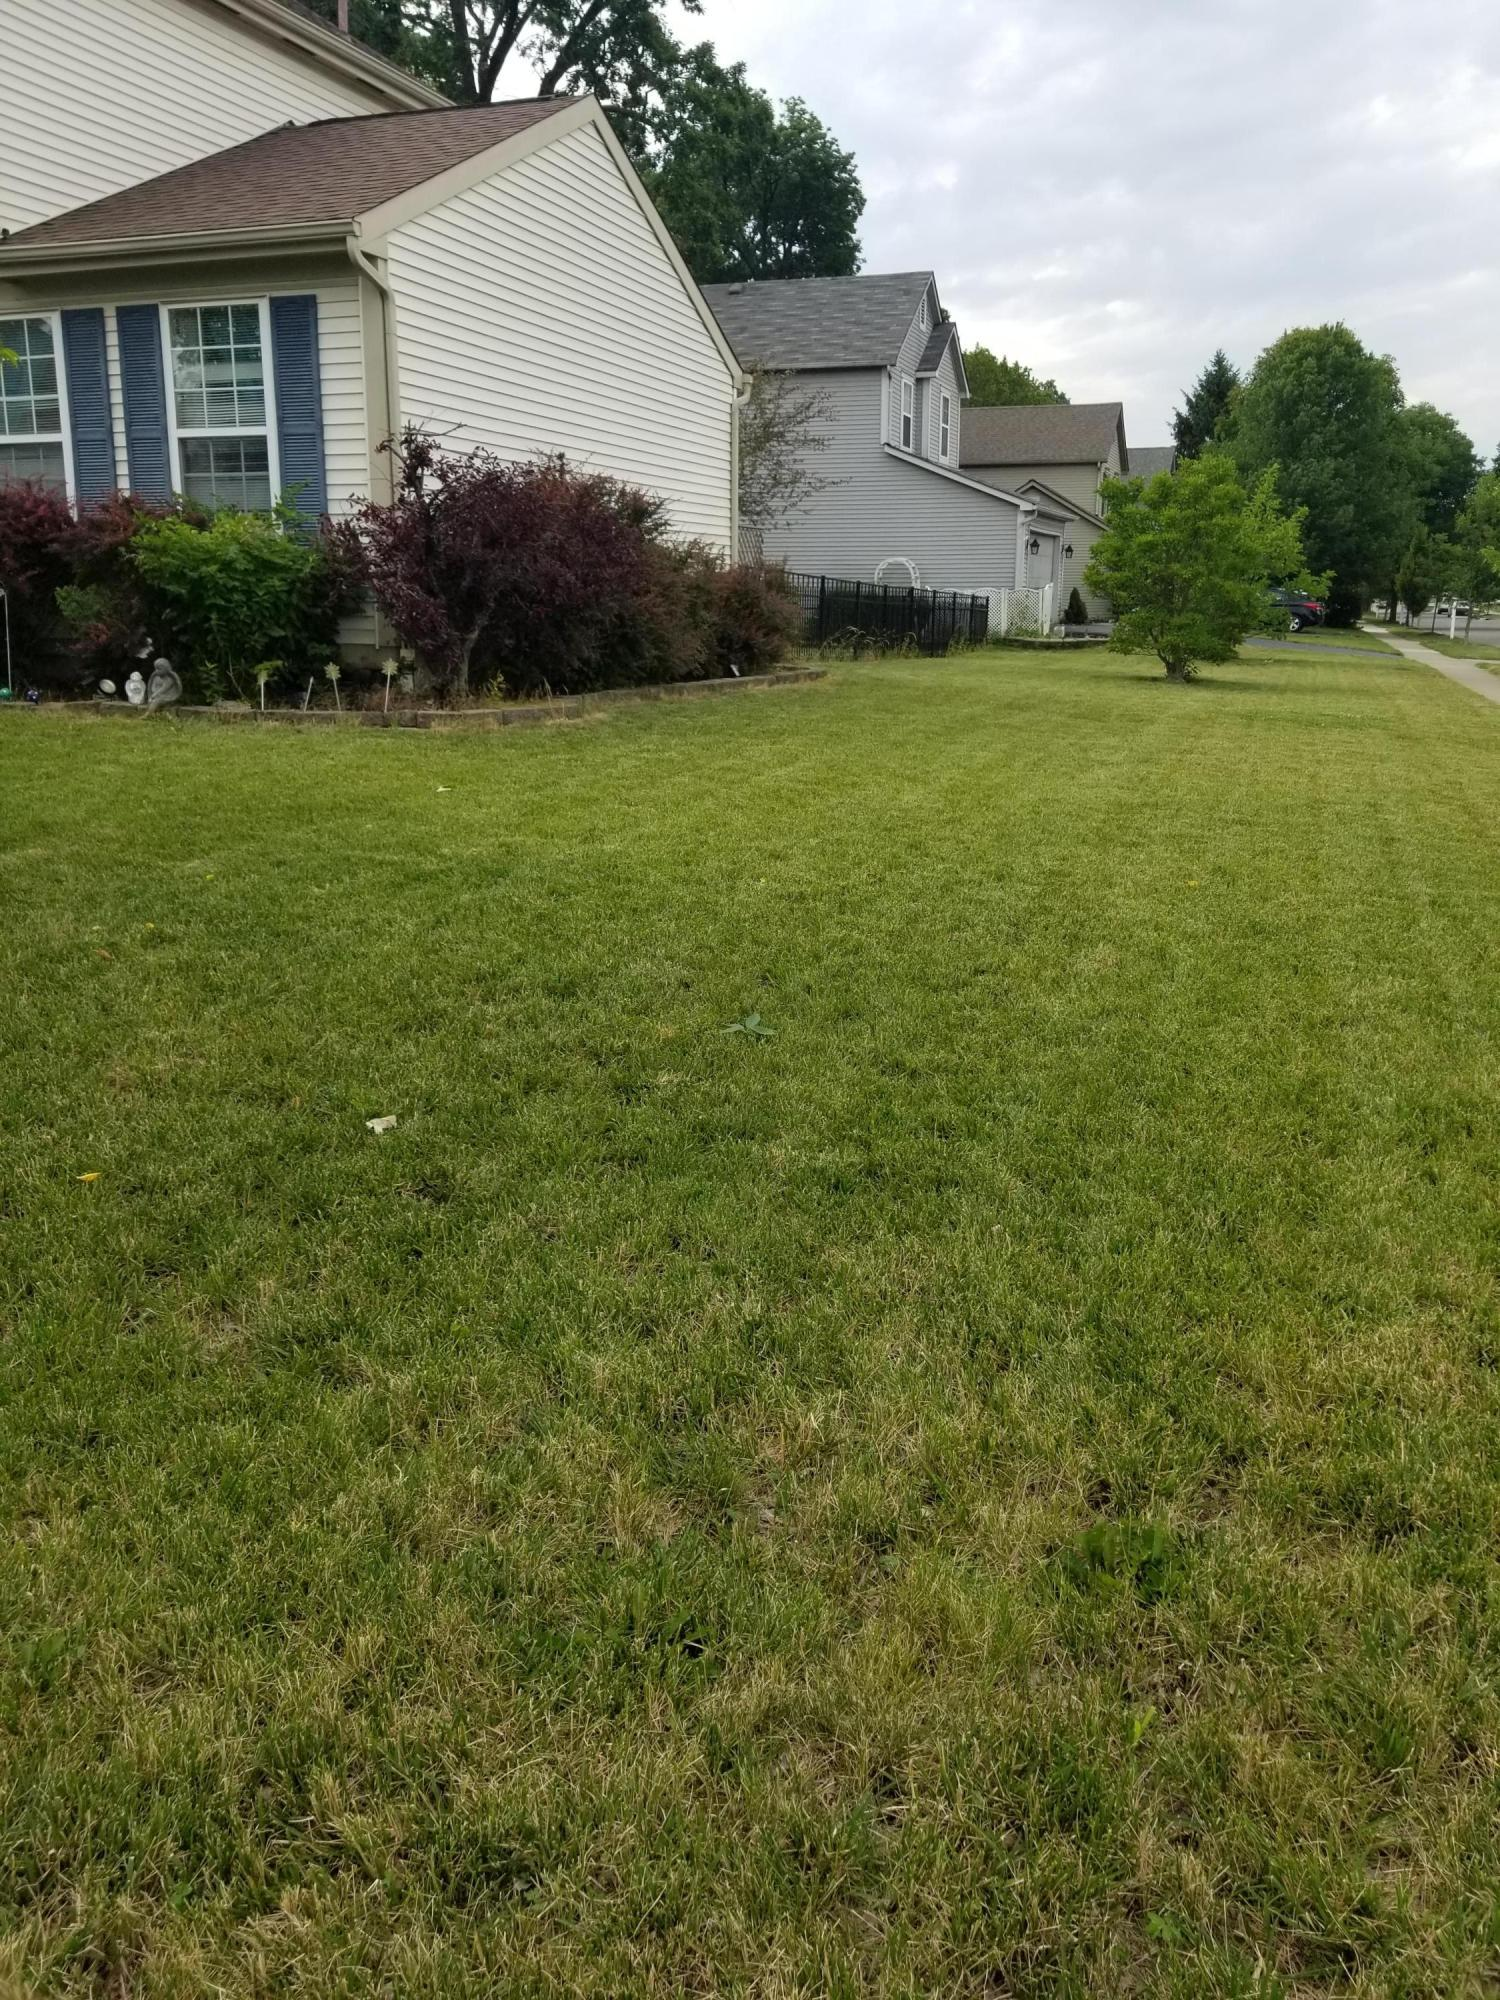 4314 Jennydawn Place, Hilliard, Ohio 43026, 3 Bedrooms Bedrooms, ,4 BathroomsBathrooms,Residential,For Sale,Jennydawn,220020746